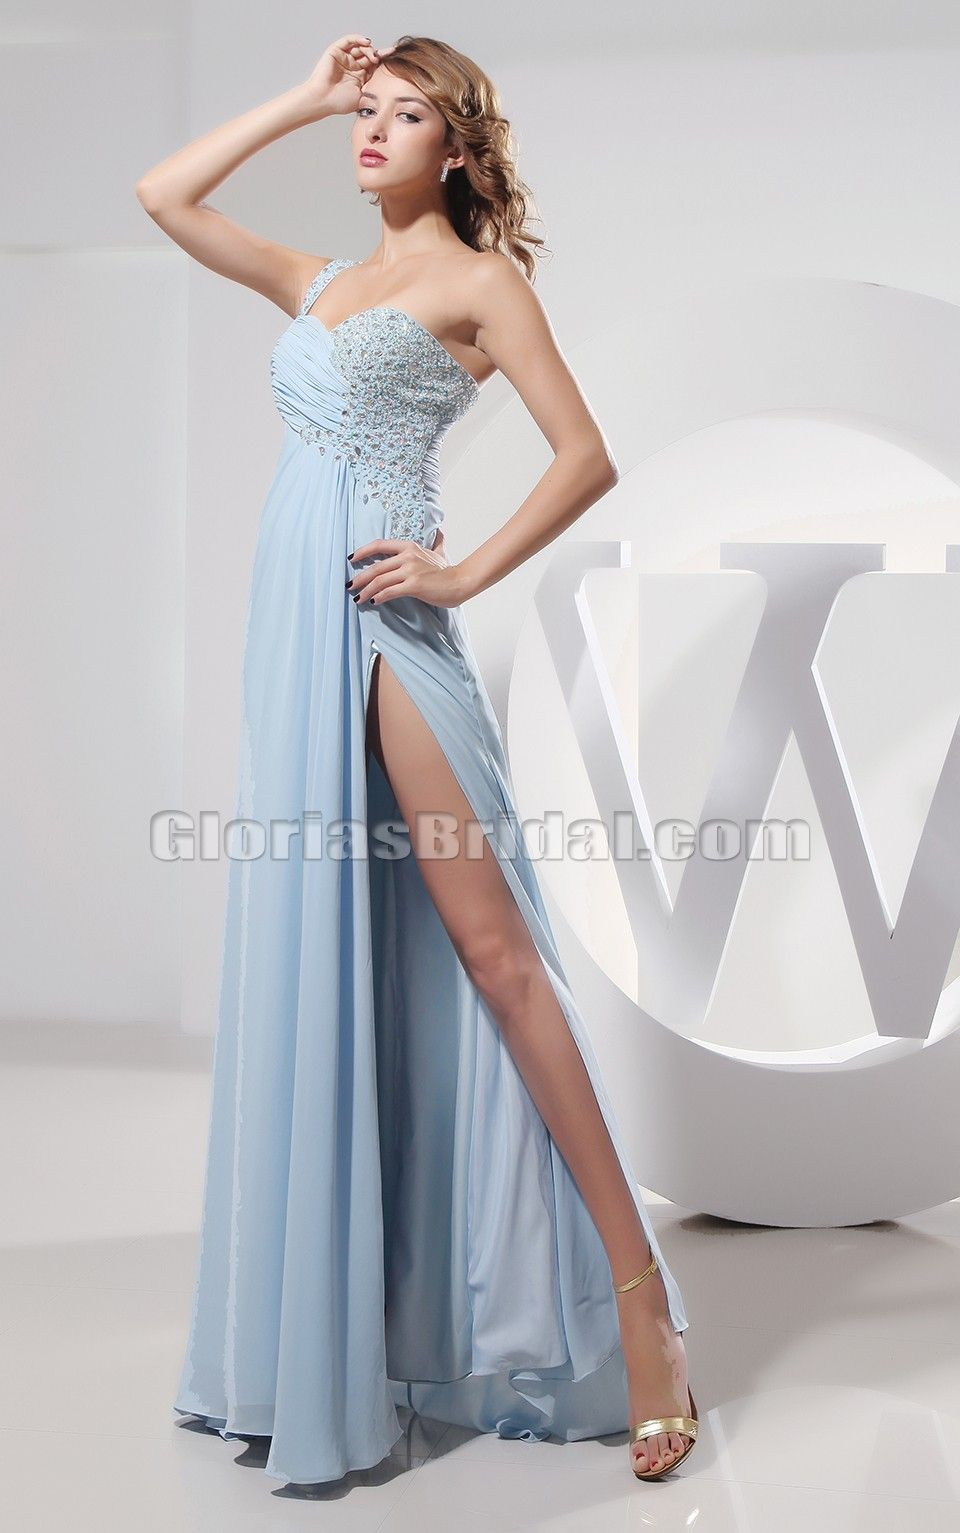 Hot one shoulder light sky blue cut out slit prom gown evening dress